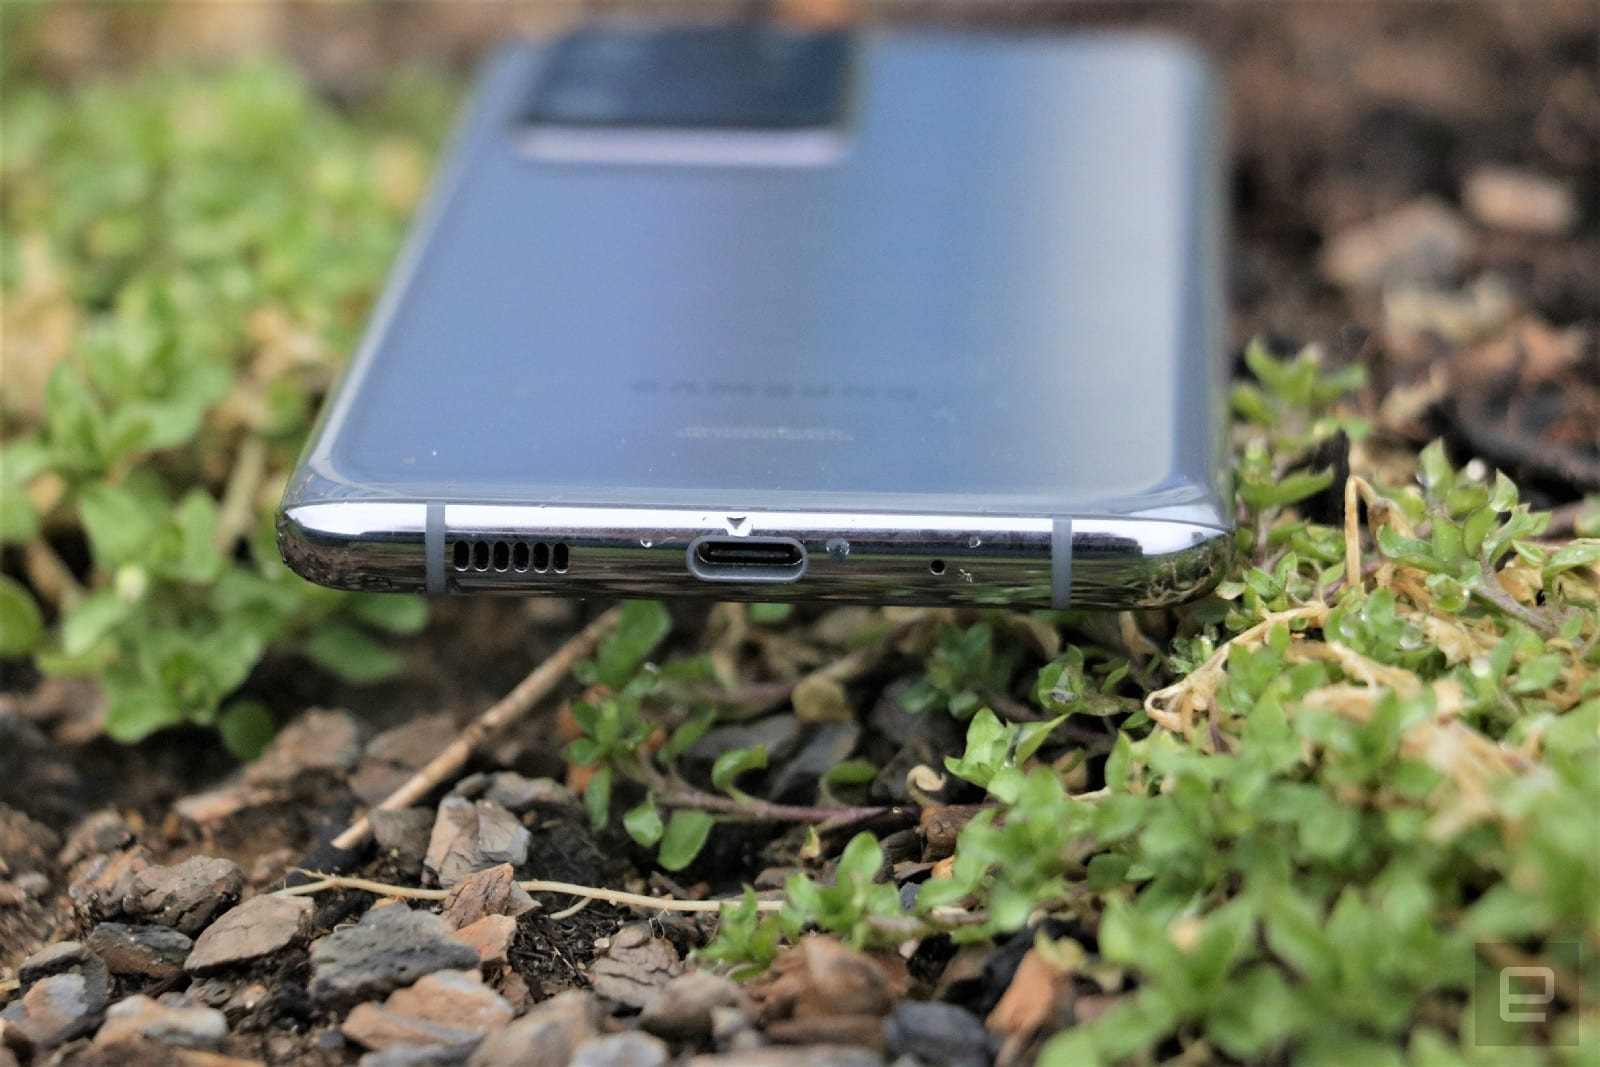 Samsung Galaxy S20 Ultra review